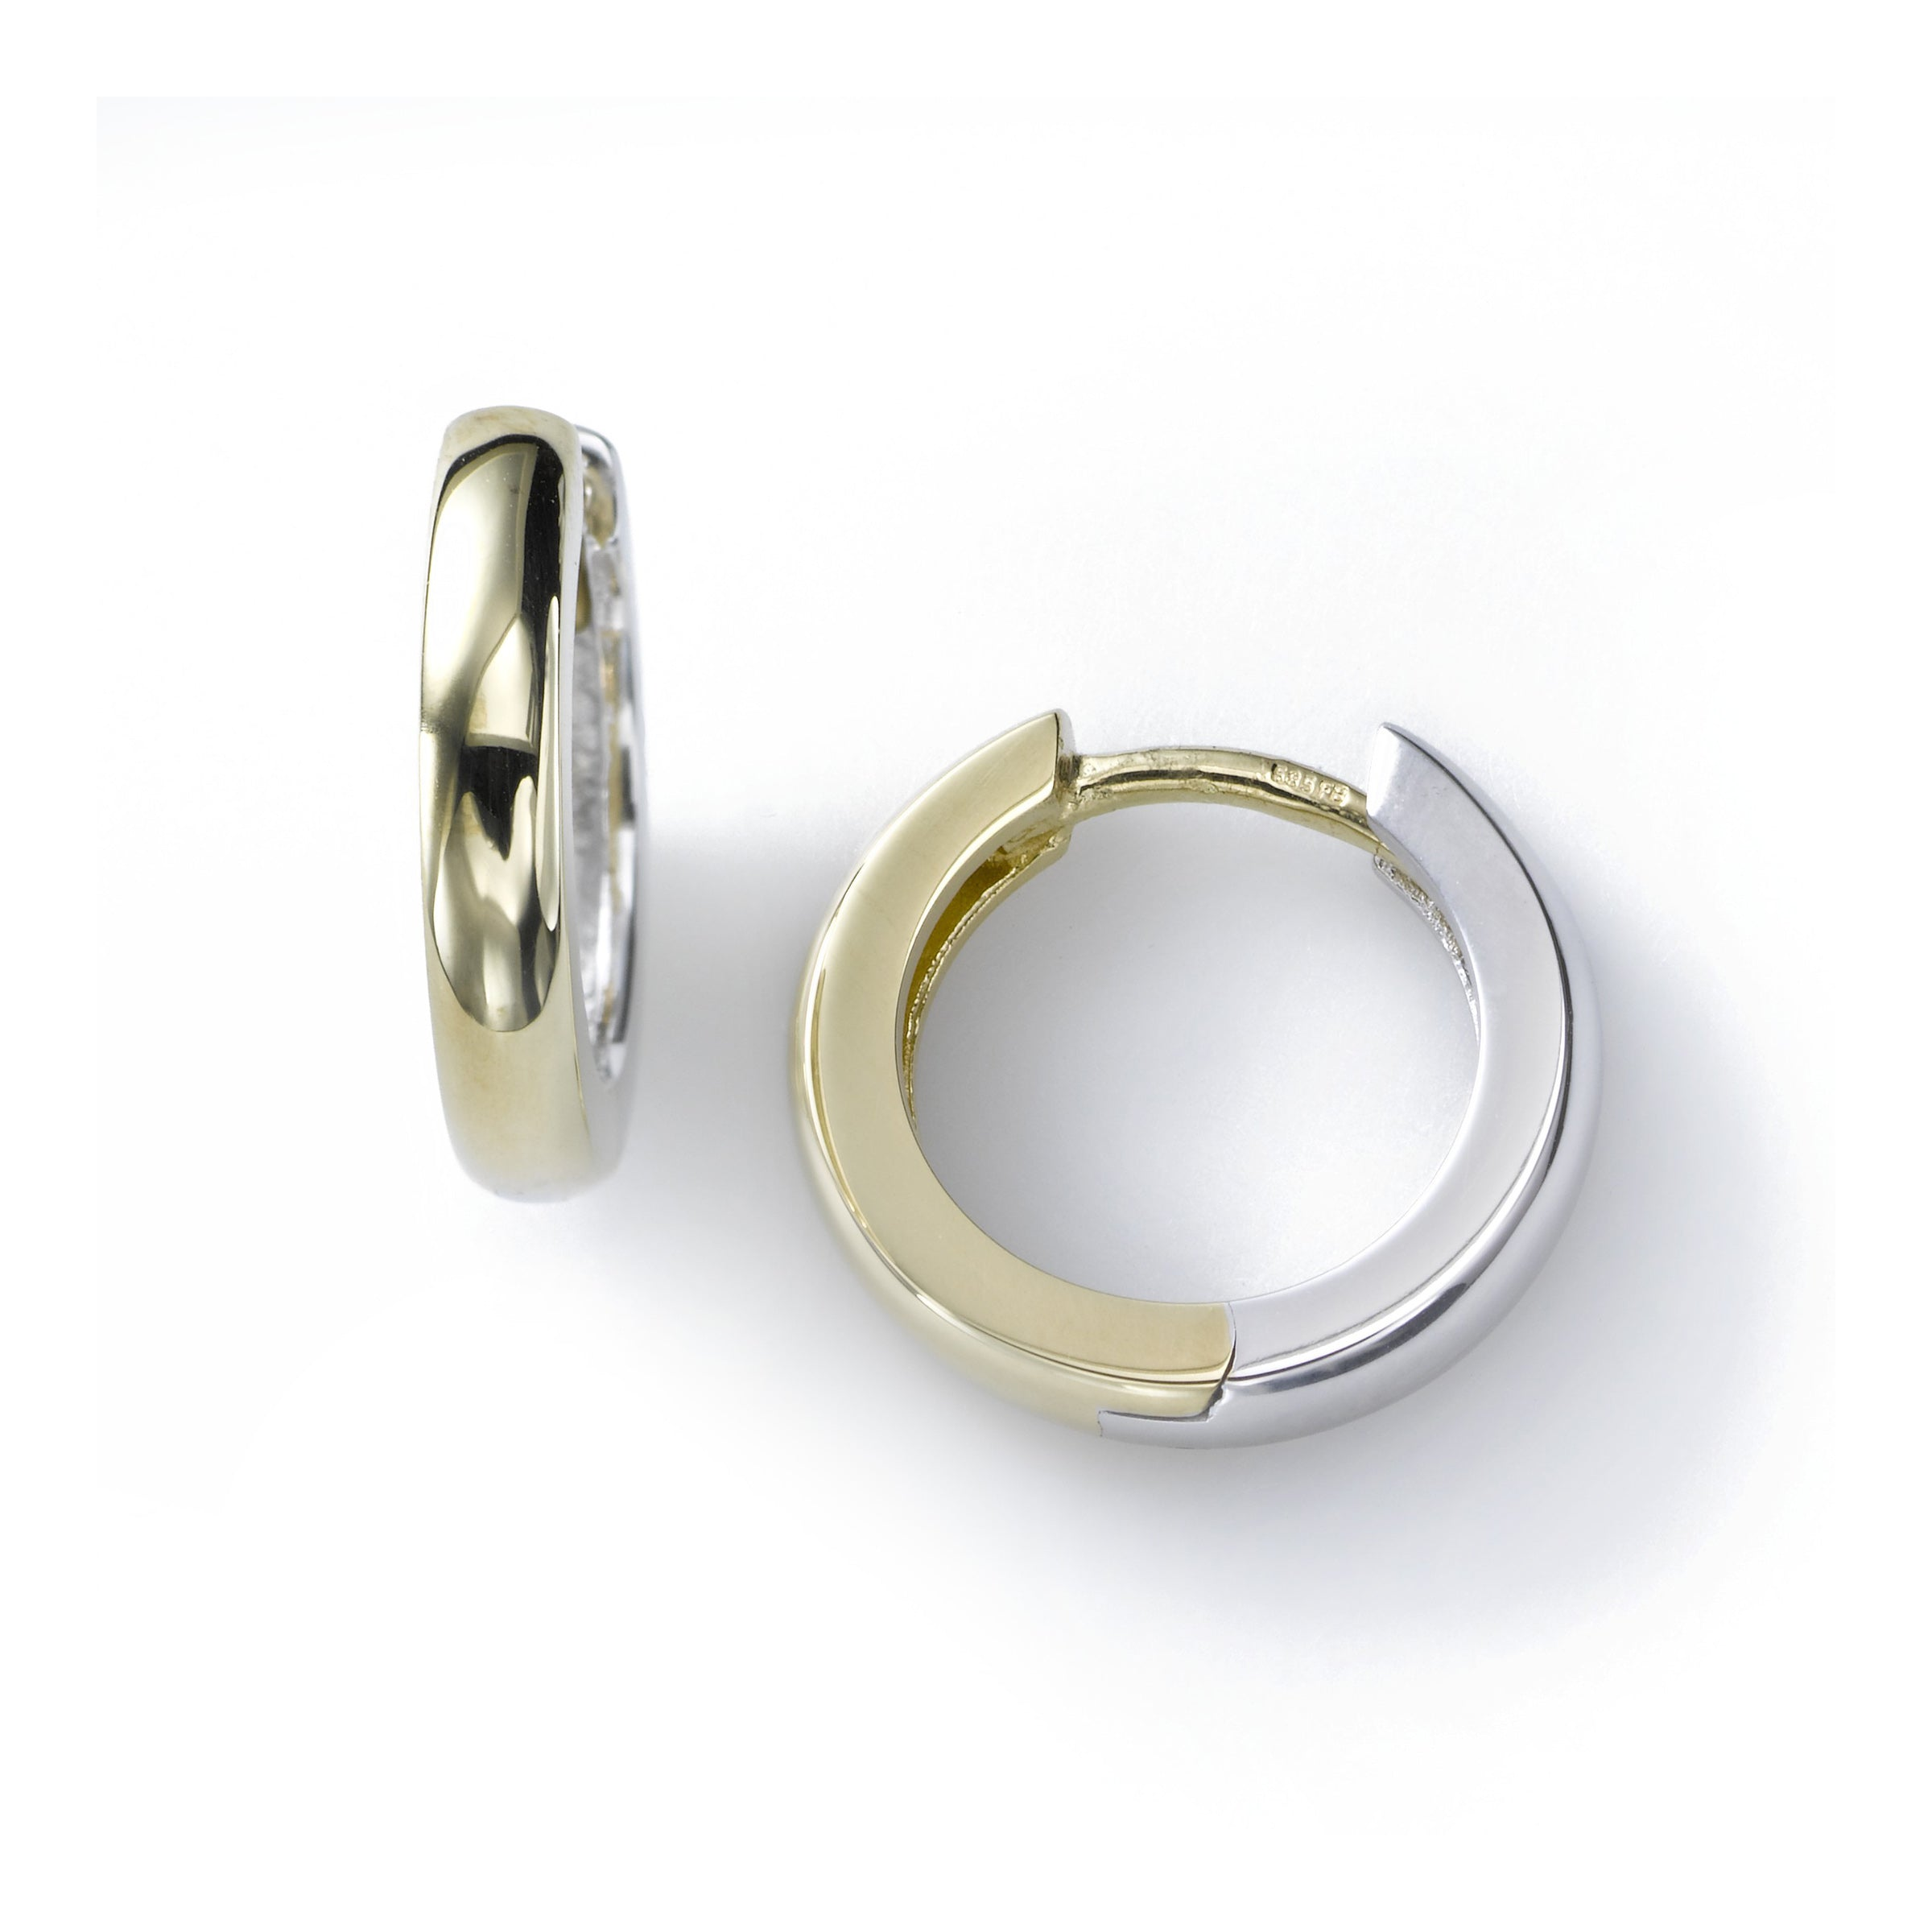 Reversible Small Huggie Hoop, .50 inch, 14K Yellow and White Gold